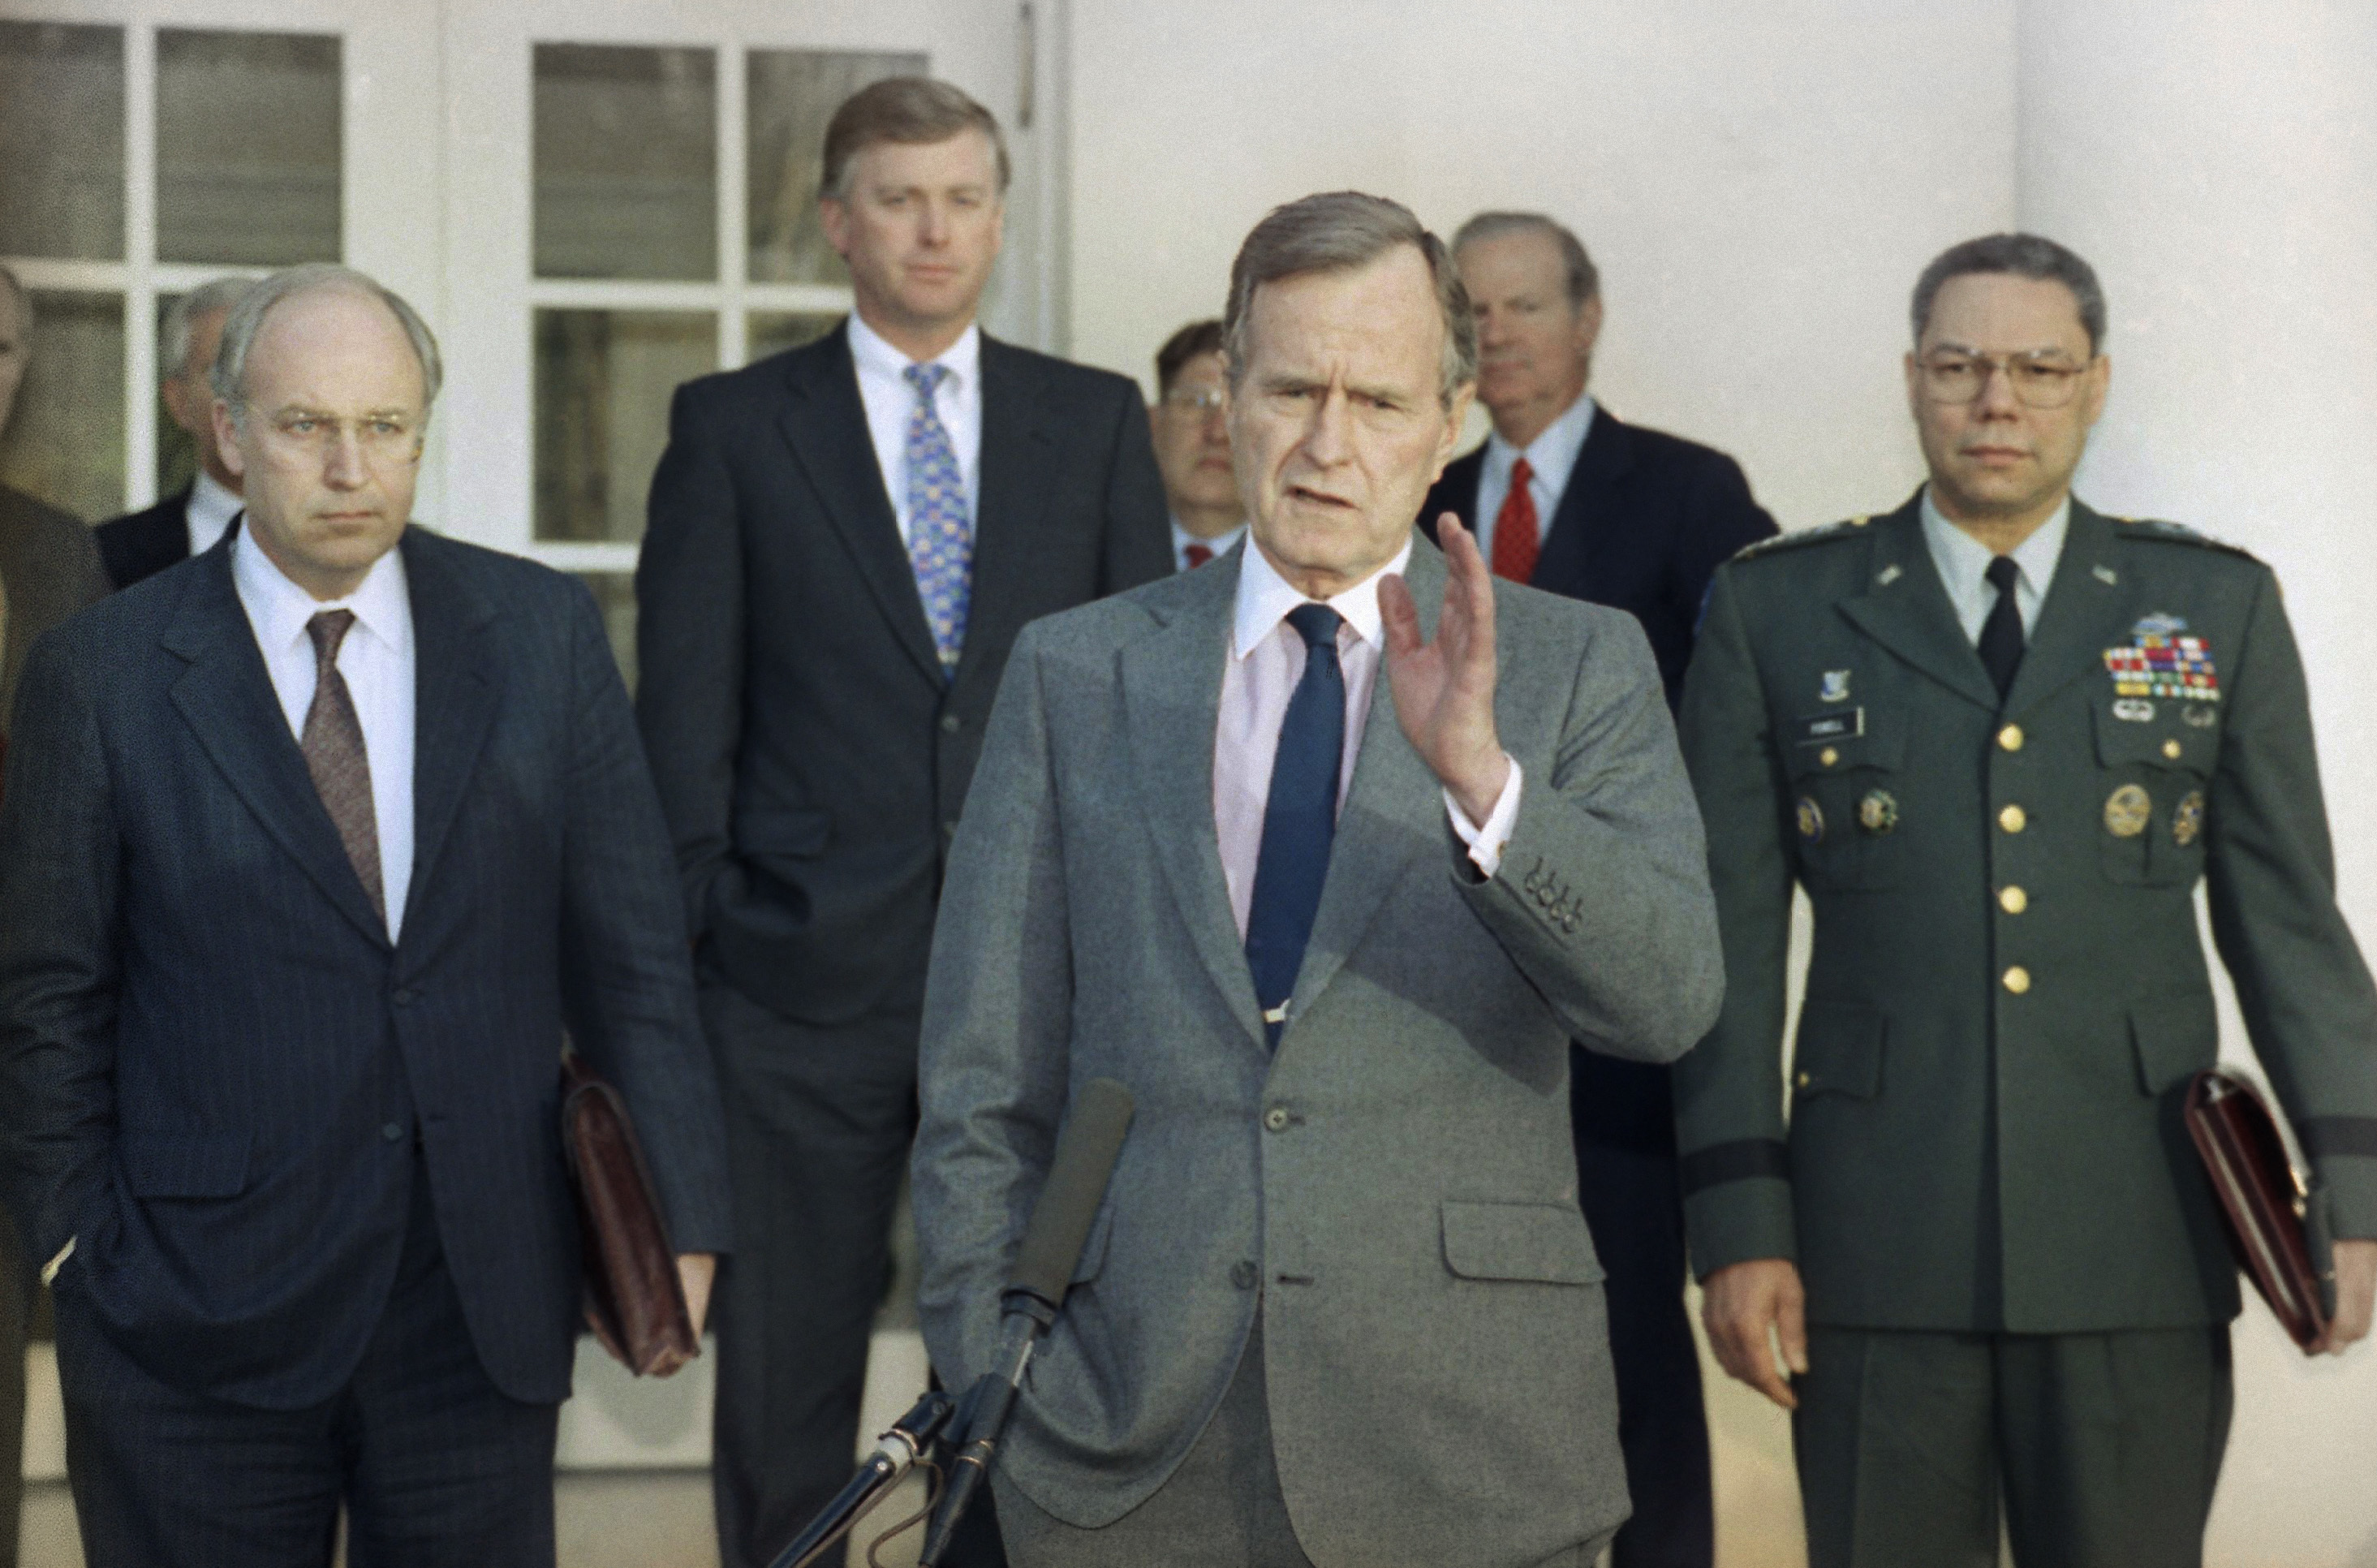 KVI's John Carlson recalls the highs and lows of the military and political career of America's 41st President, George Herbert Walker Bush who died Nov. 30, 2018 at age 94.{ } In this Feb. 11, 1991, file photo, President George H.W. Bush talks to reporters in the Rose Garden of the White House after meeting with top military advisors to discuss the Persian Gulf War. From left are, Defense Secretary Dick Cheney, Vice President Dan Quayle, White House Chief of Staff John Sununu, the president, Secretary of State James A. Baker III, and Joint Chiefs Chairman Gen. Colin Powell. Bush died about eight months after the death of his wife, Barbara Bush. (AP Photo/Ron Edmonds, File)